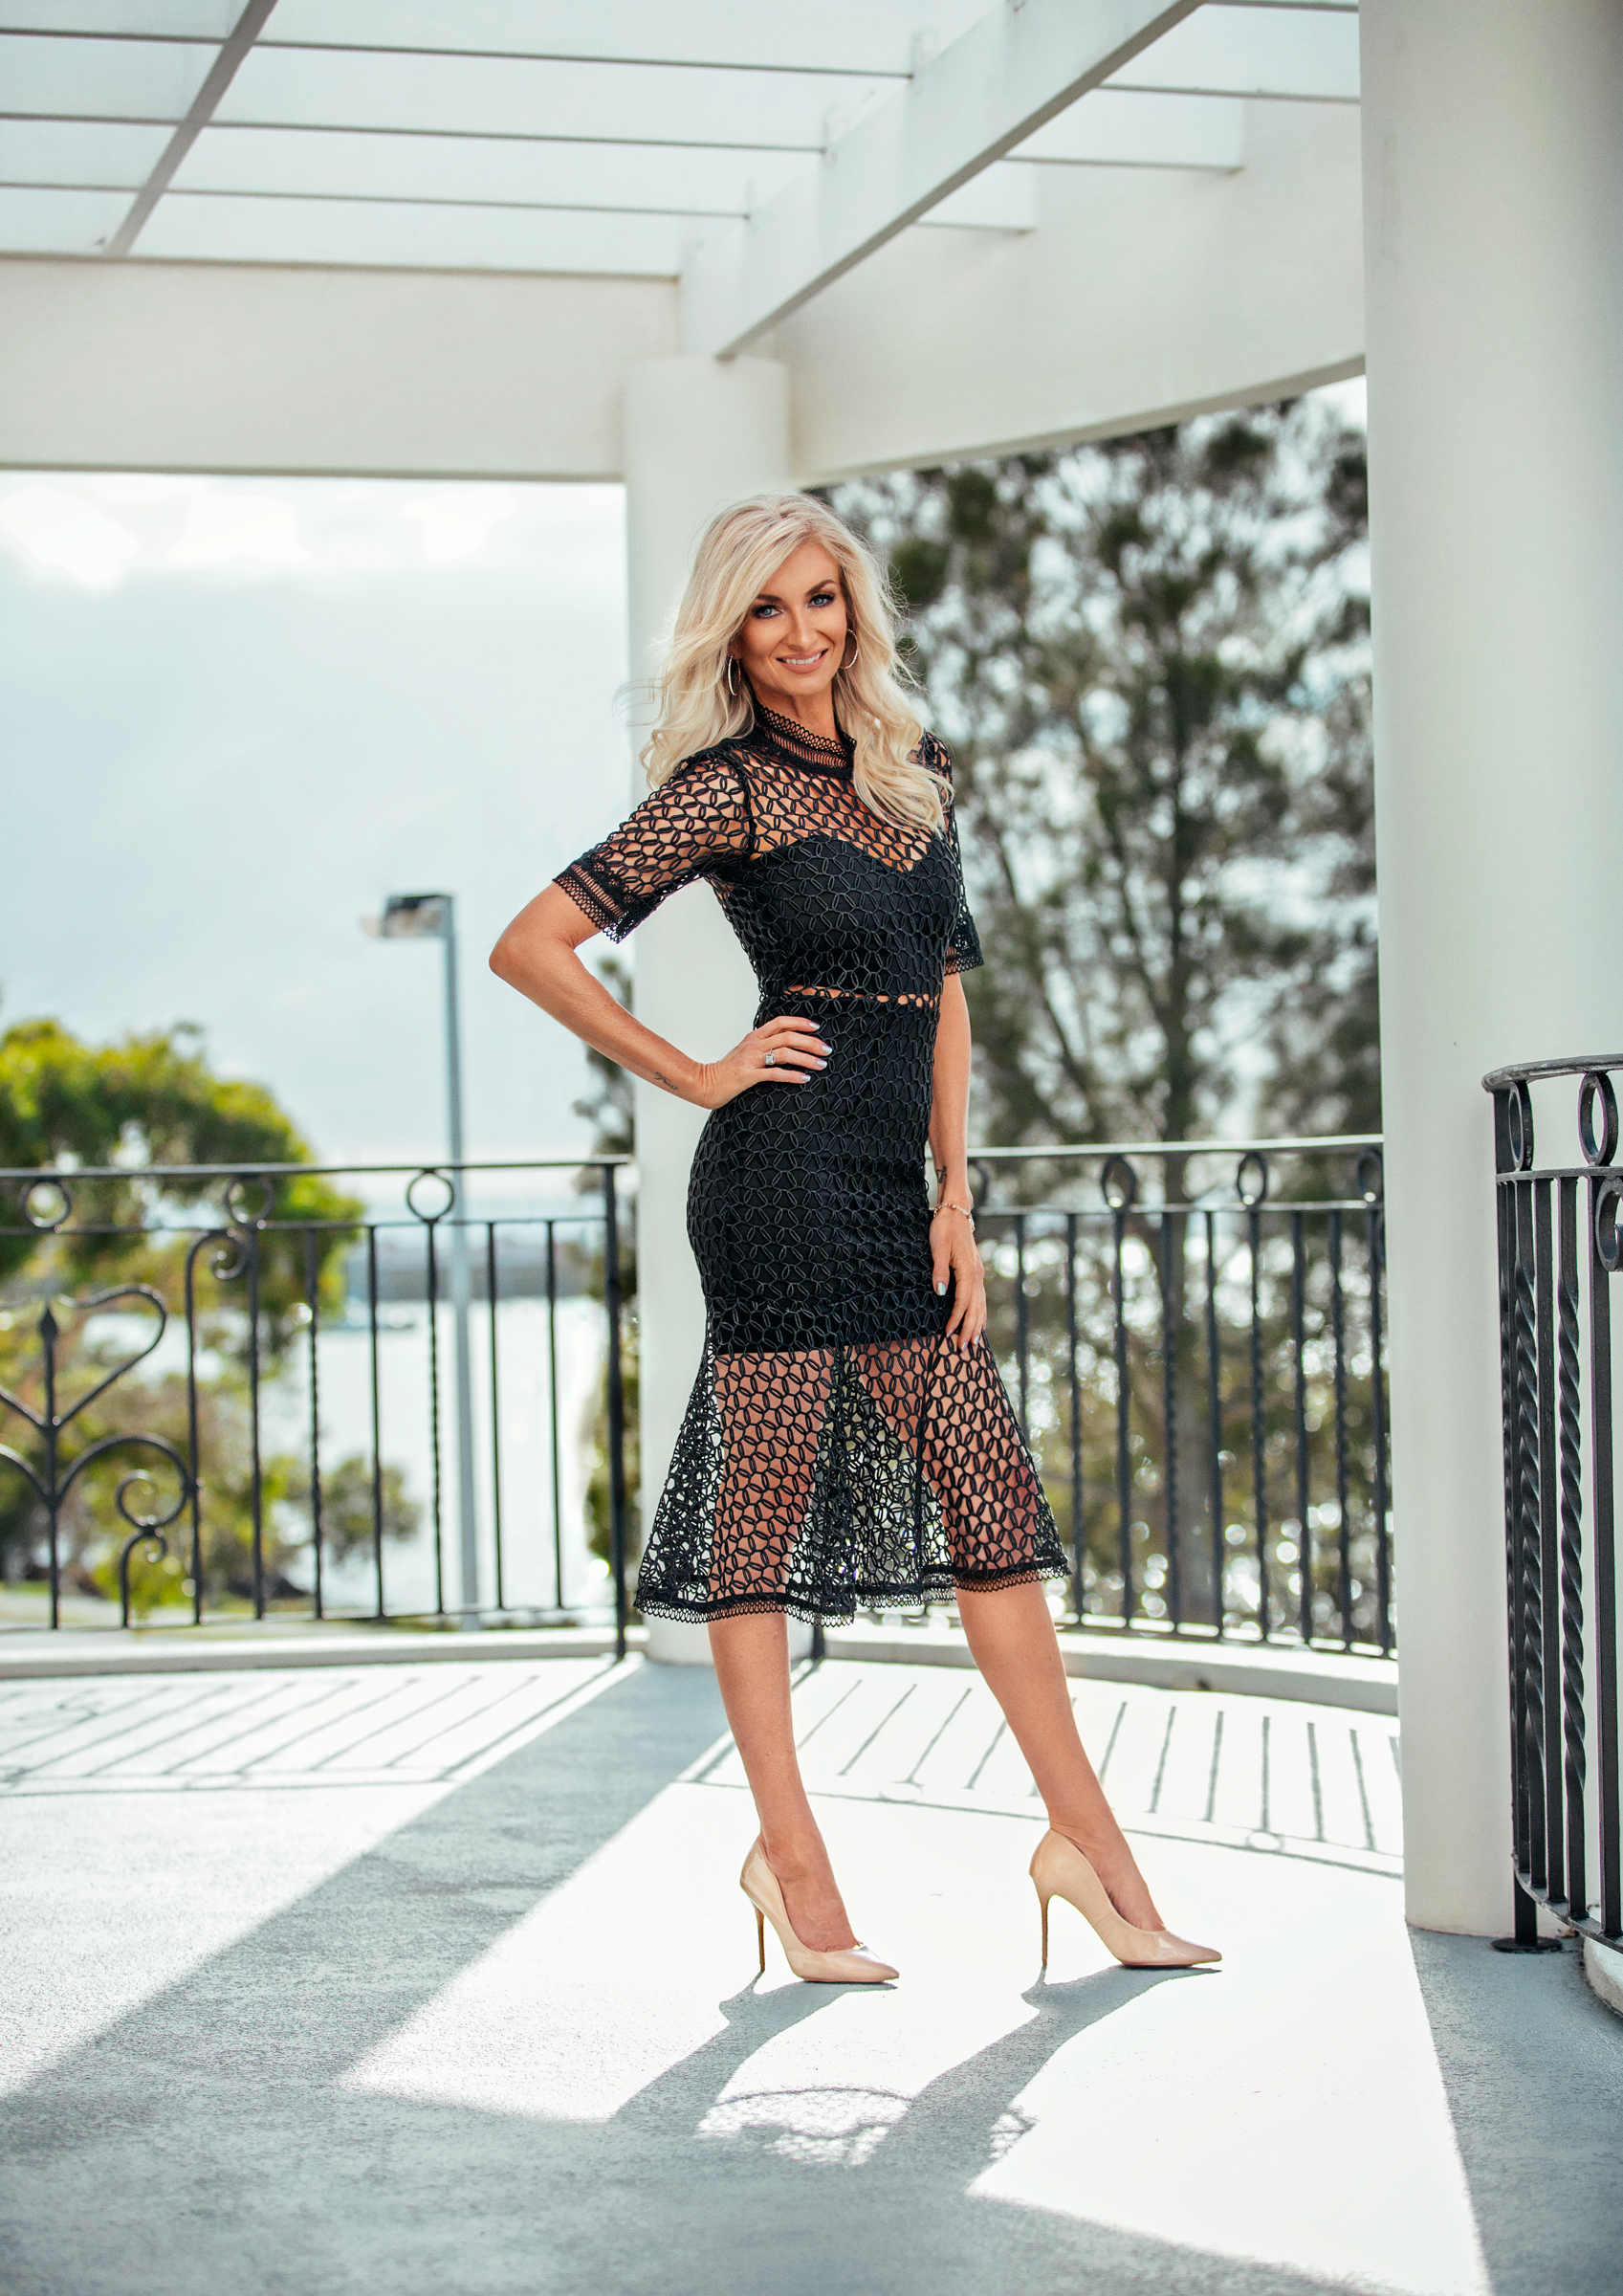 fitness photographer gold coast